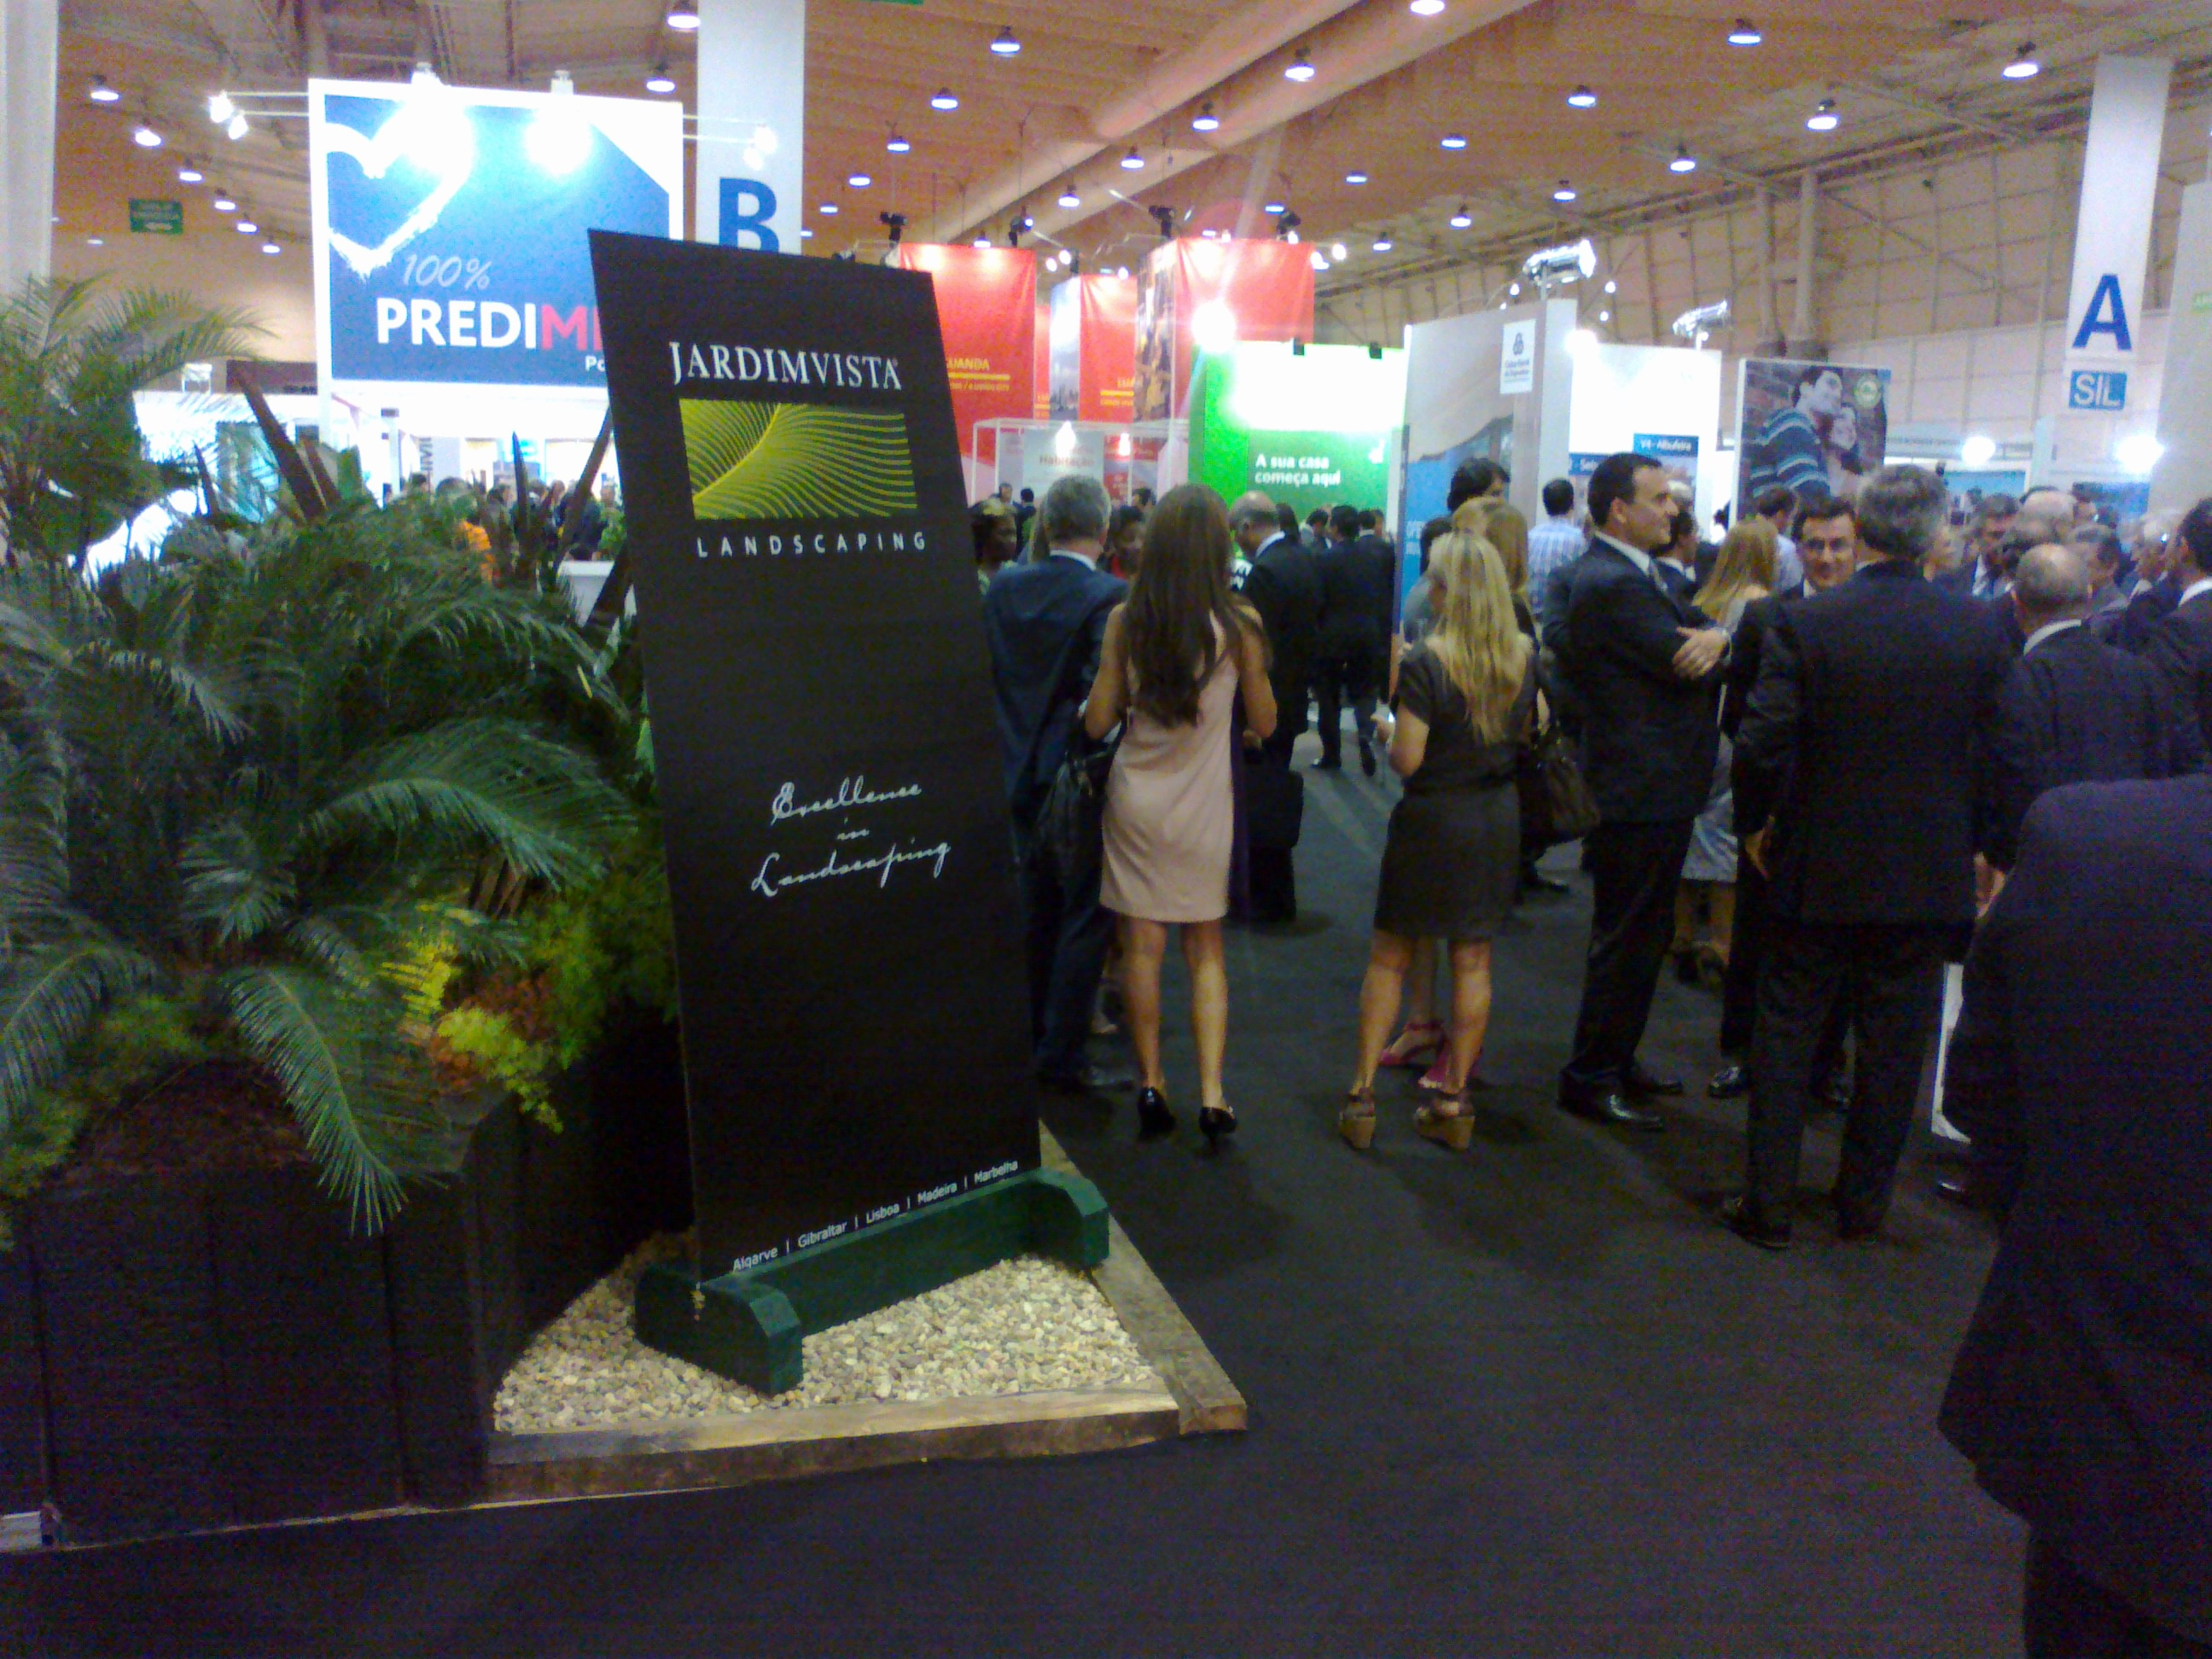 Jardim Vista at 2011 Portugal Real Estate Exhibition and Lisbon Design Show